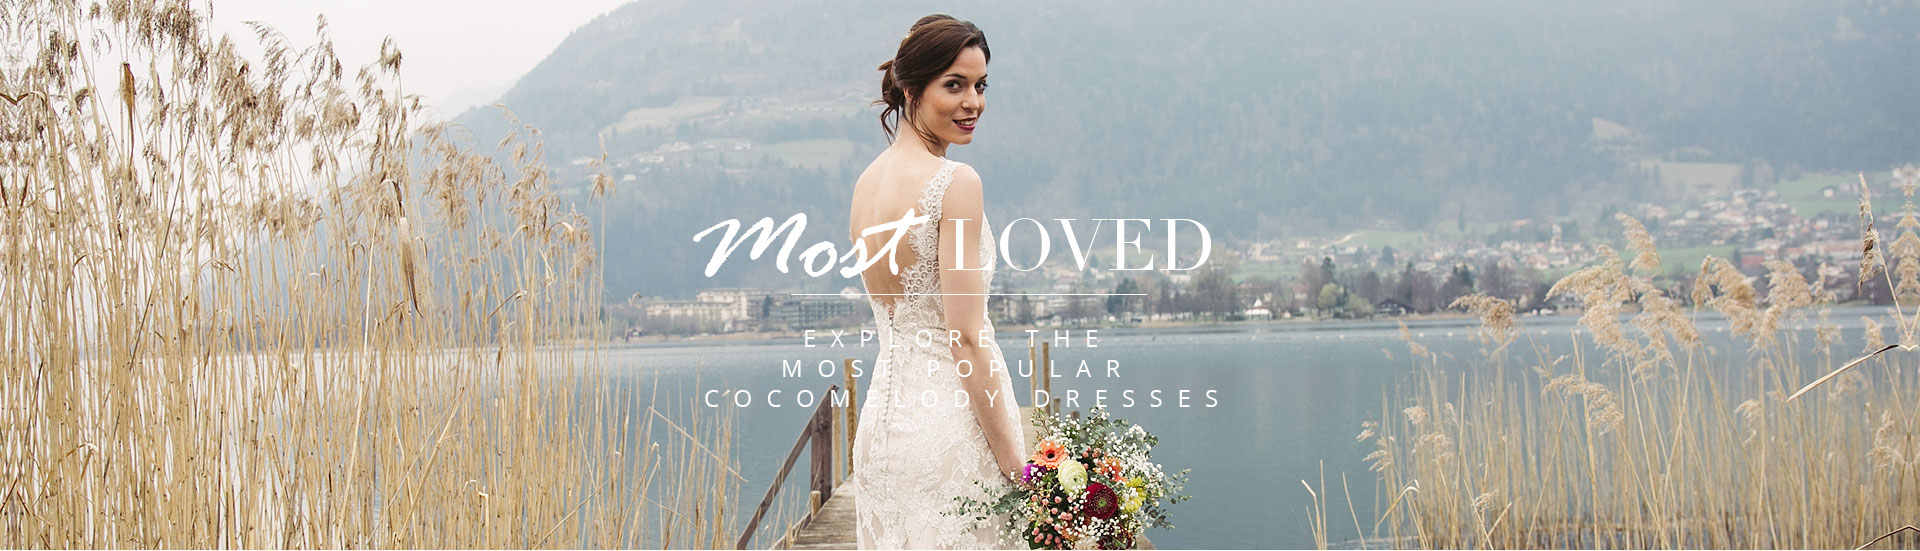 Cocomelody: Most Loved Wedding Dresses, Bridesmaid Dresses and Party ...